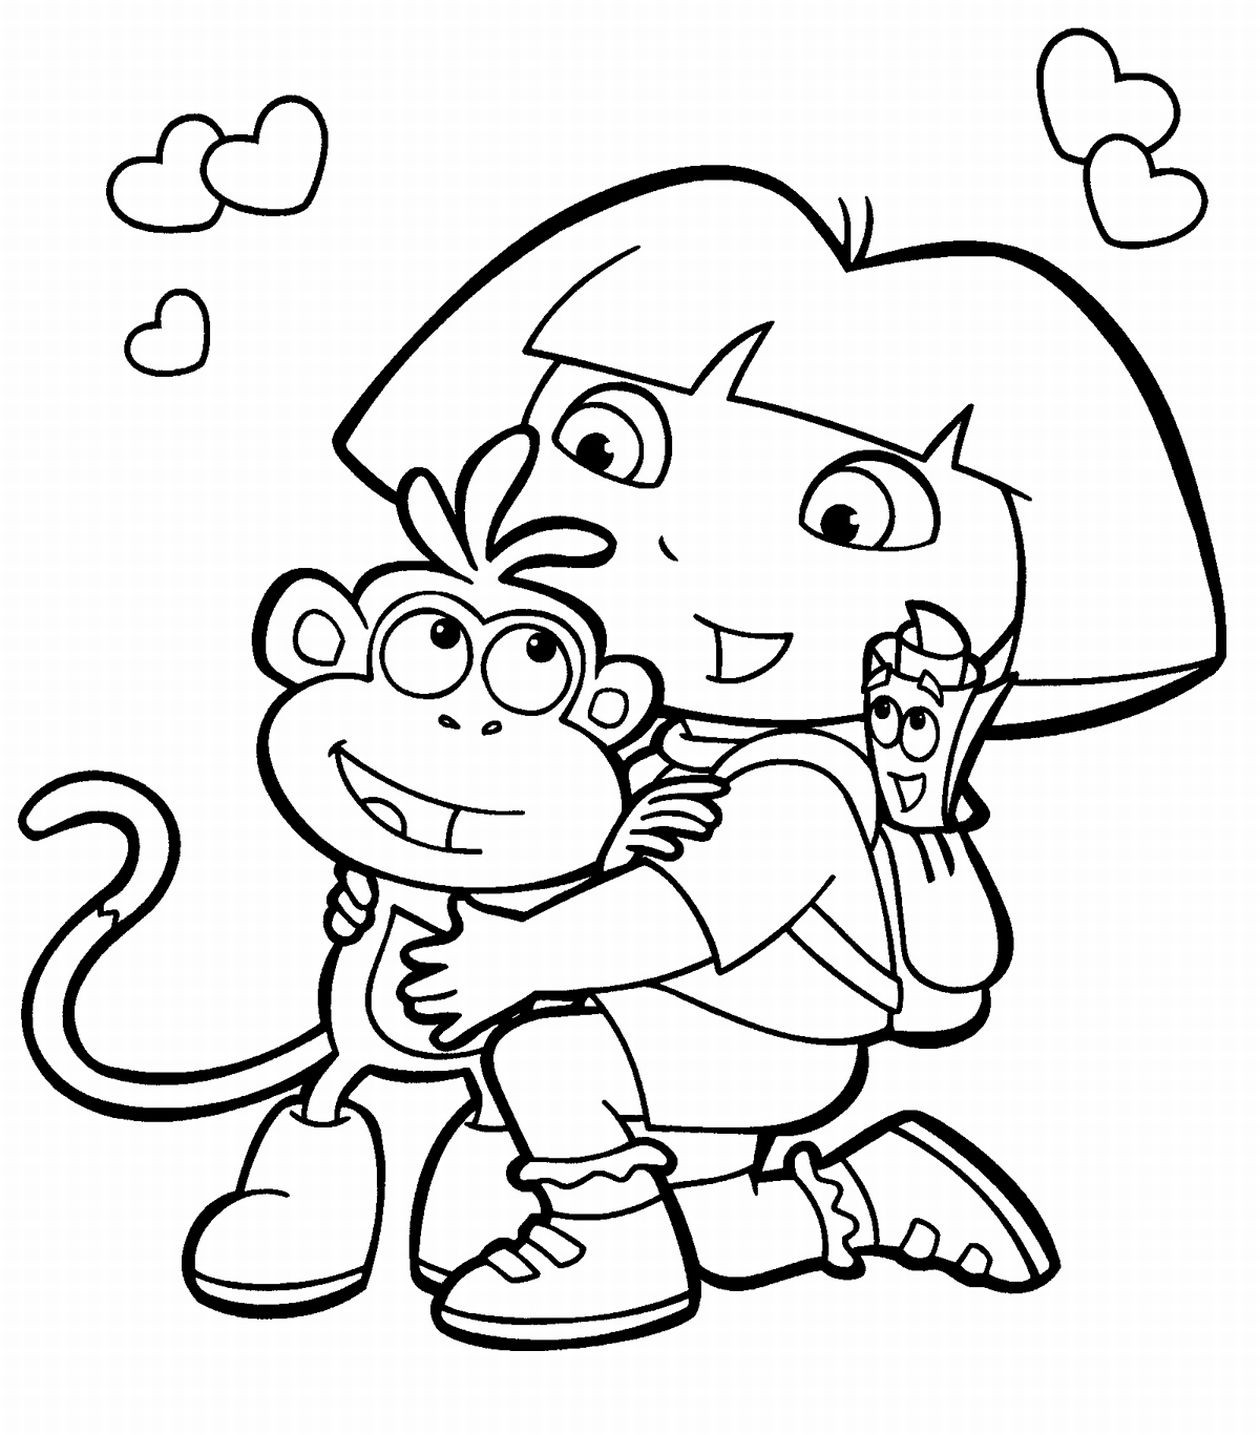 dora sketch for coloring how to draw dora the explorer 11 steps with pictures dora coloring for sketch